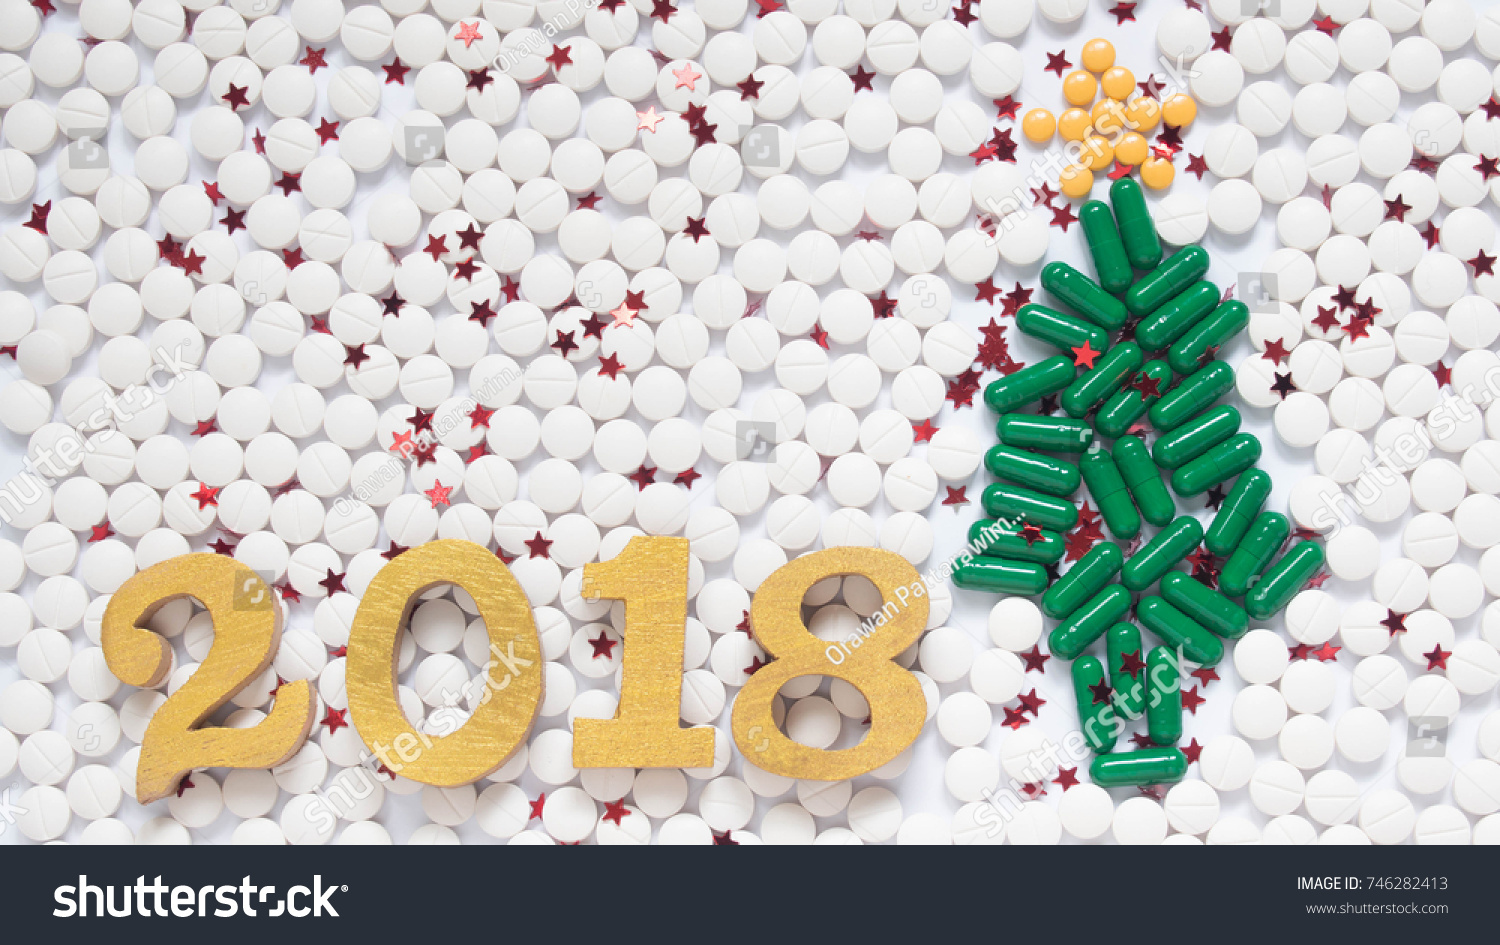 Happy New Year 2018 Medical Health Stock Photo 746282413